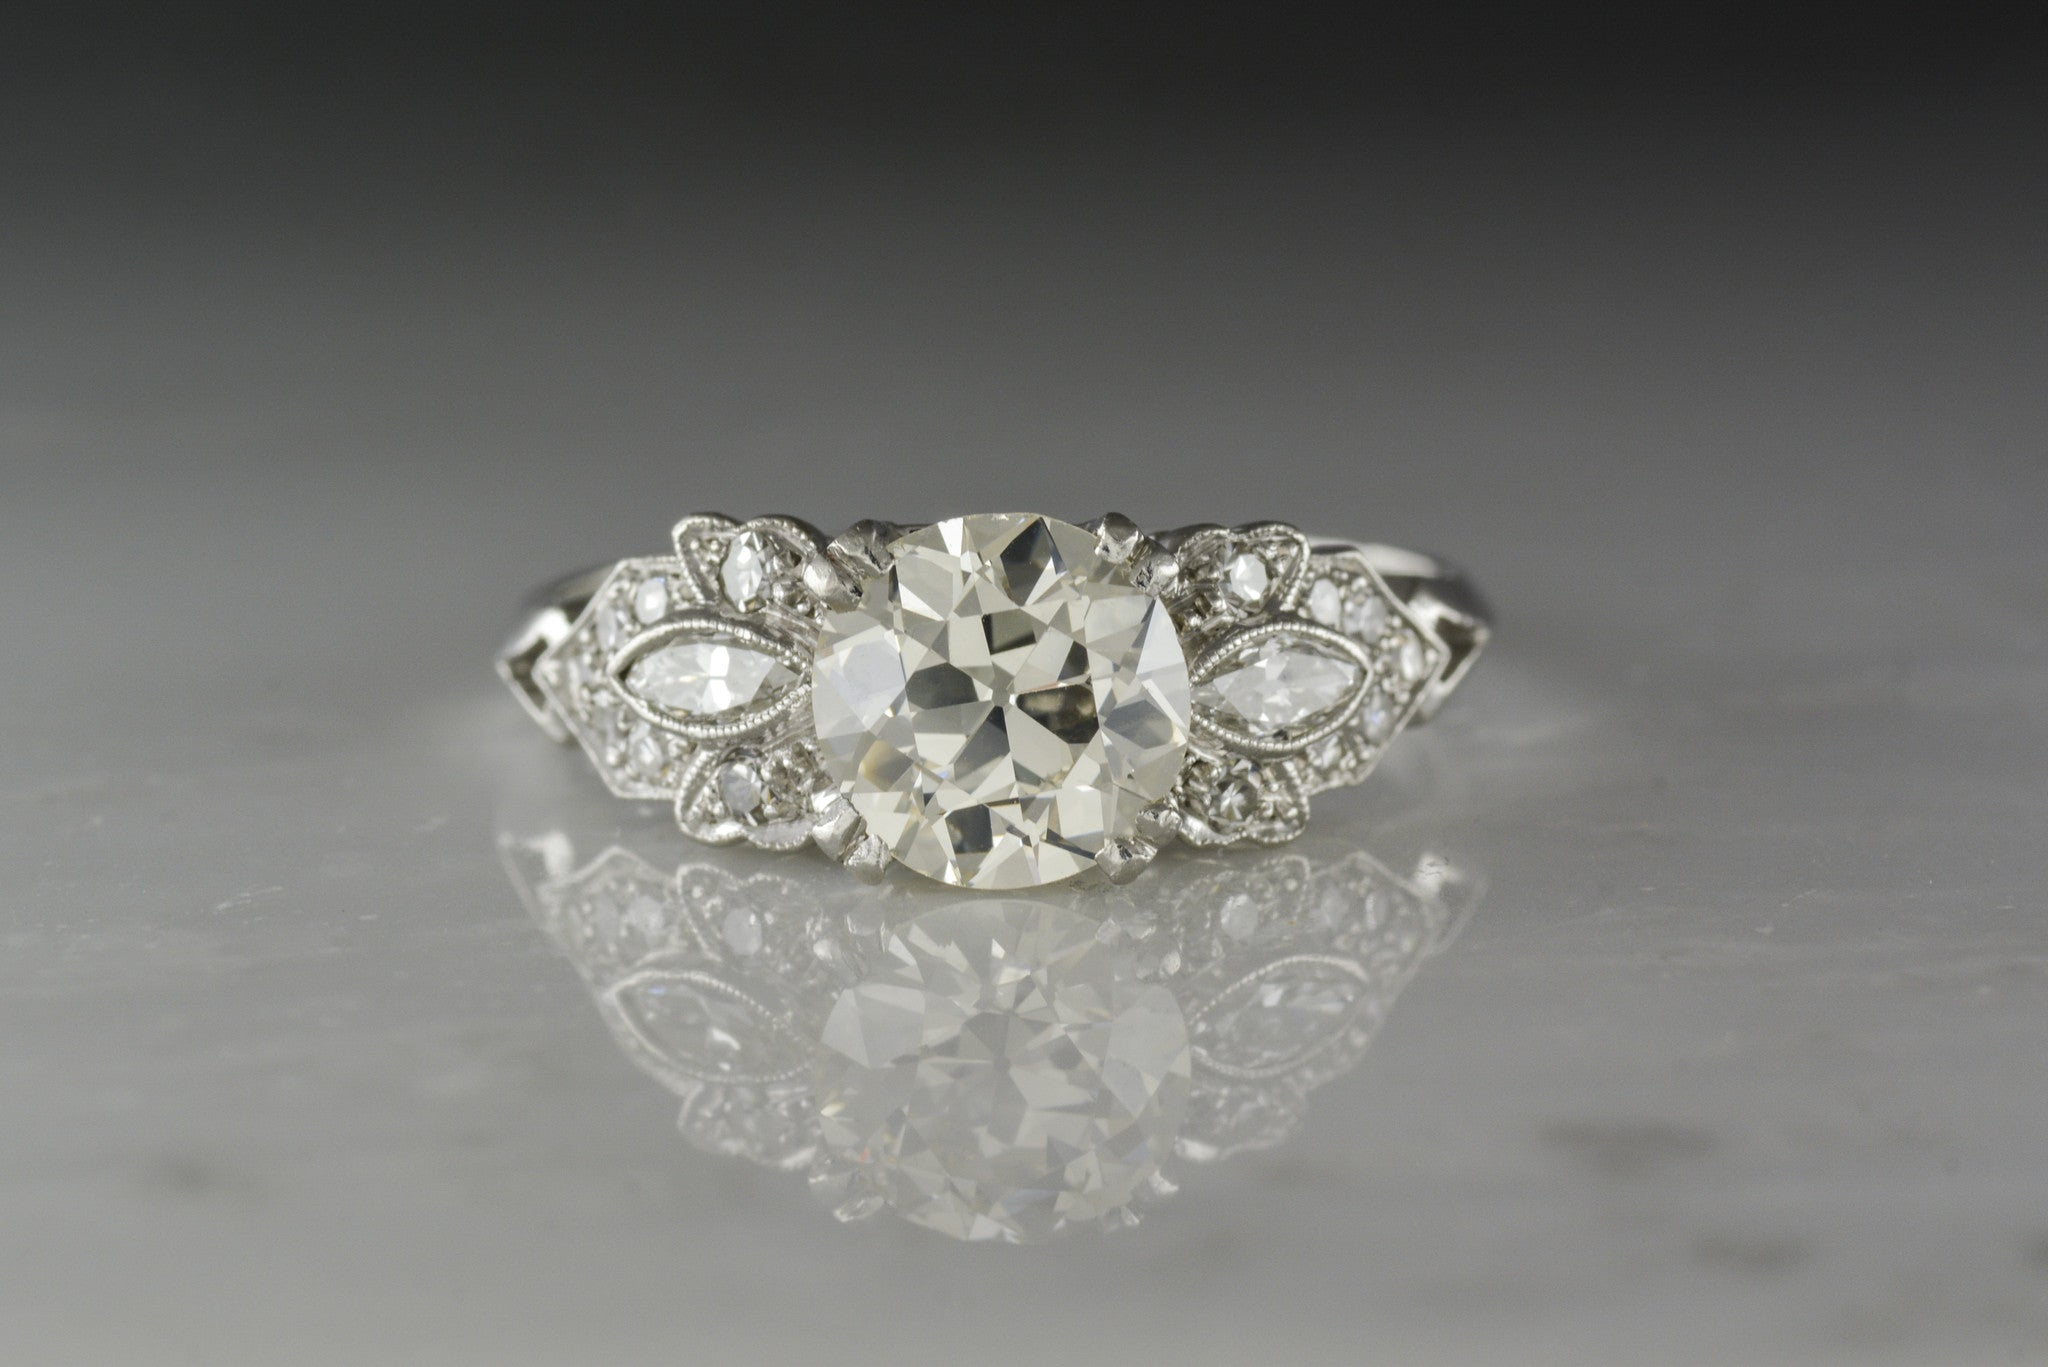 Antique c. 1920s Late Edwardian / Early Art Deco Engagement Ring with 1.30  Carat Old European Cut Diamond Center (1.58 ctw)